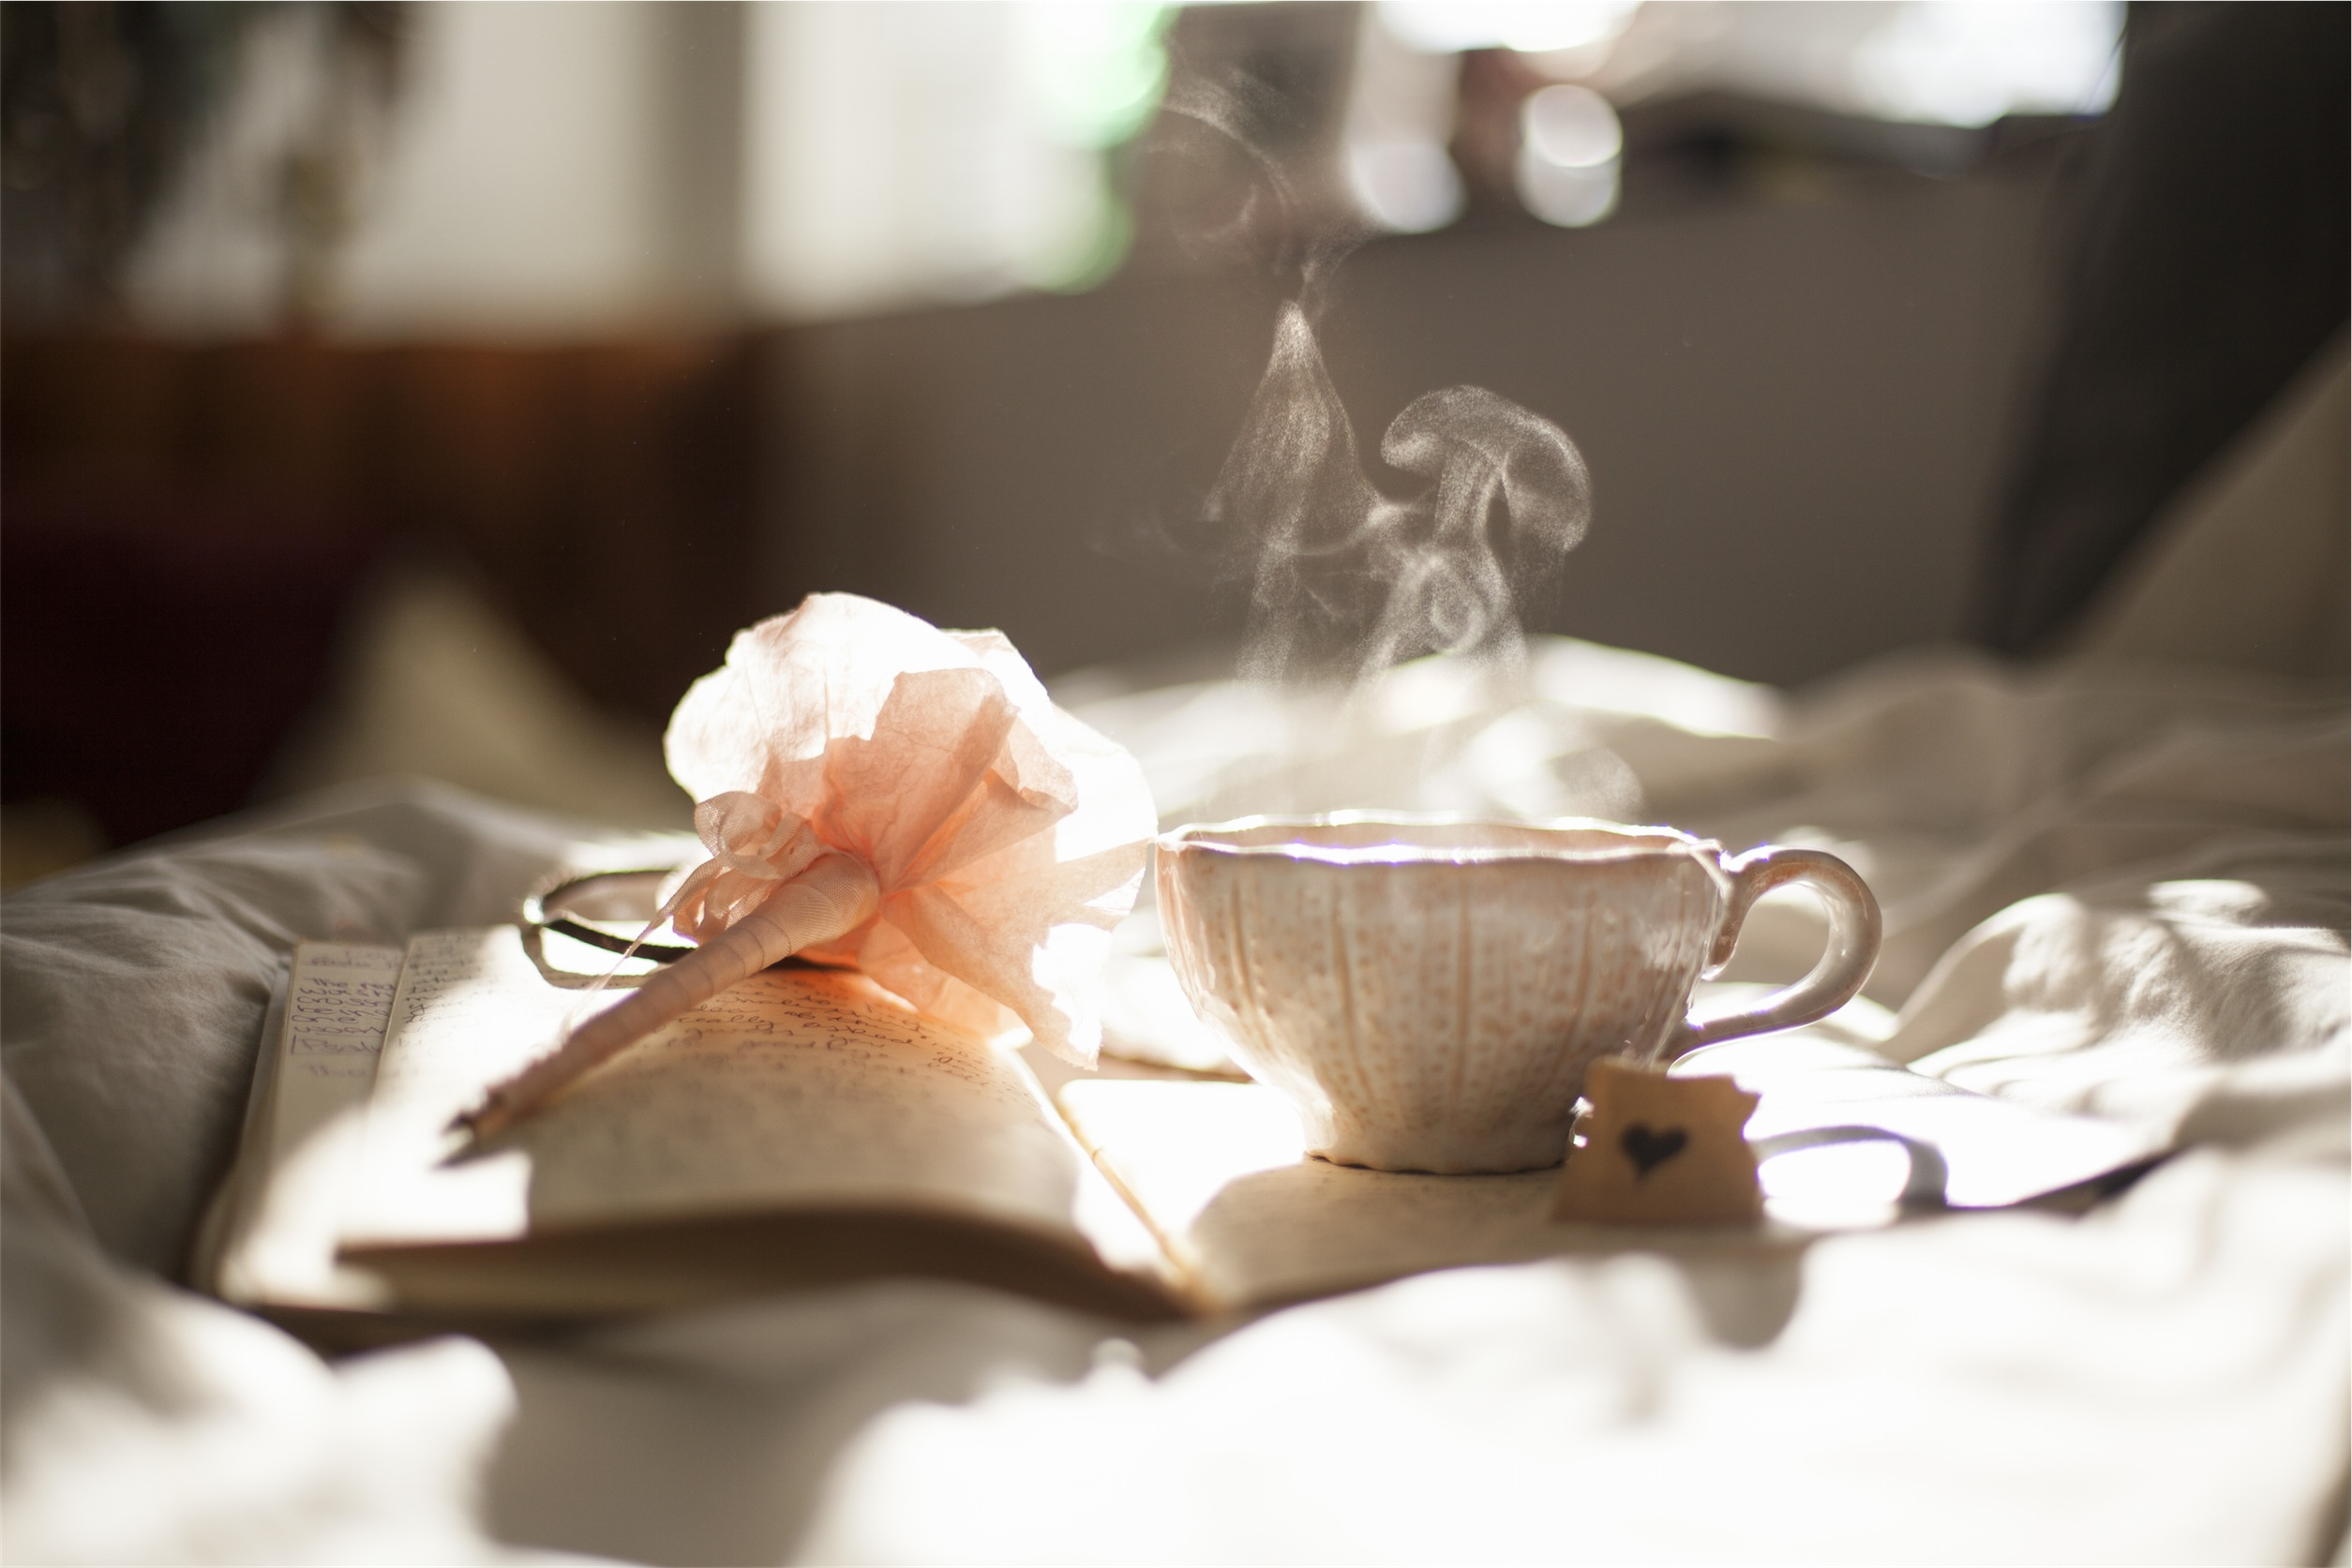 Tea cup with steam and pen on bed